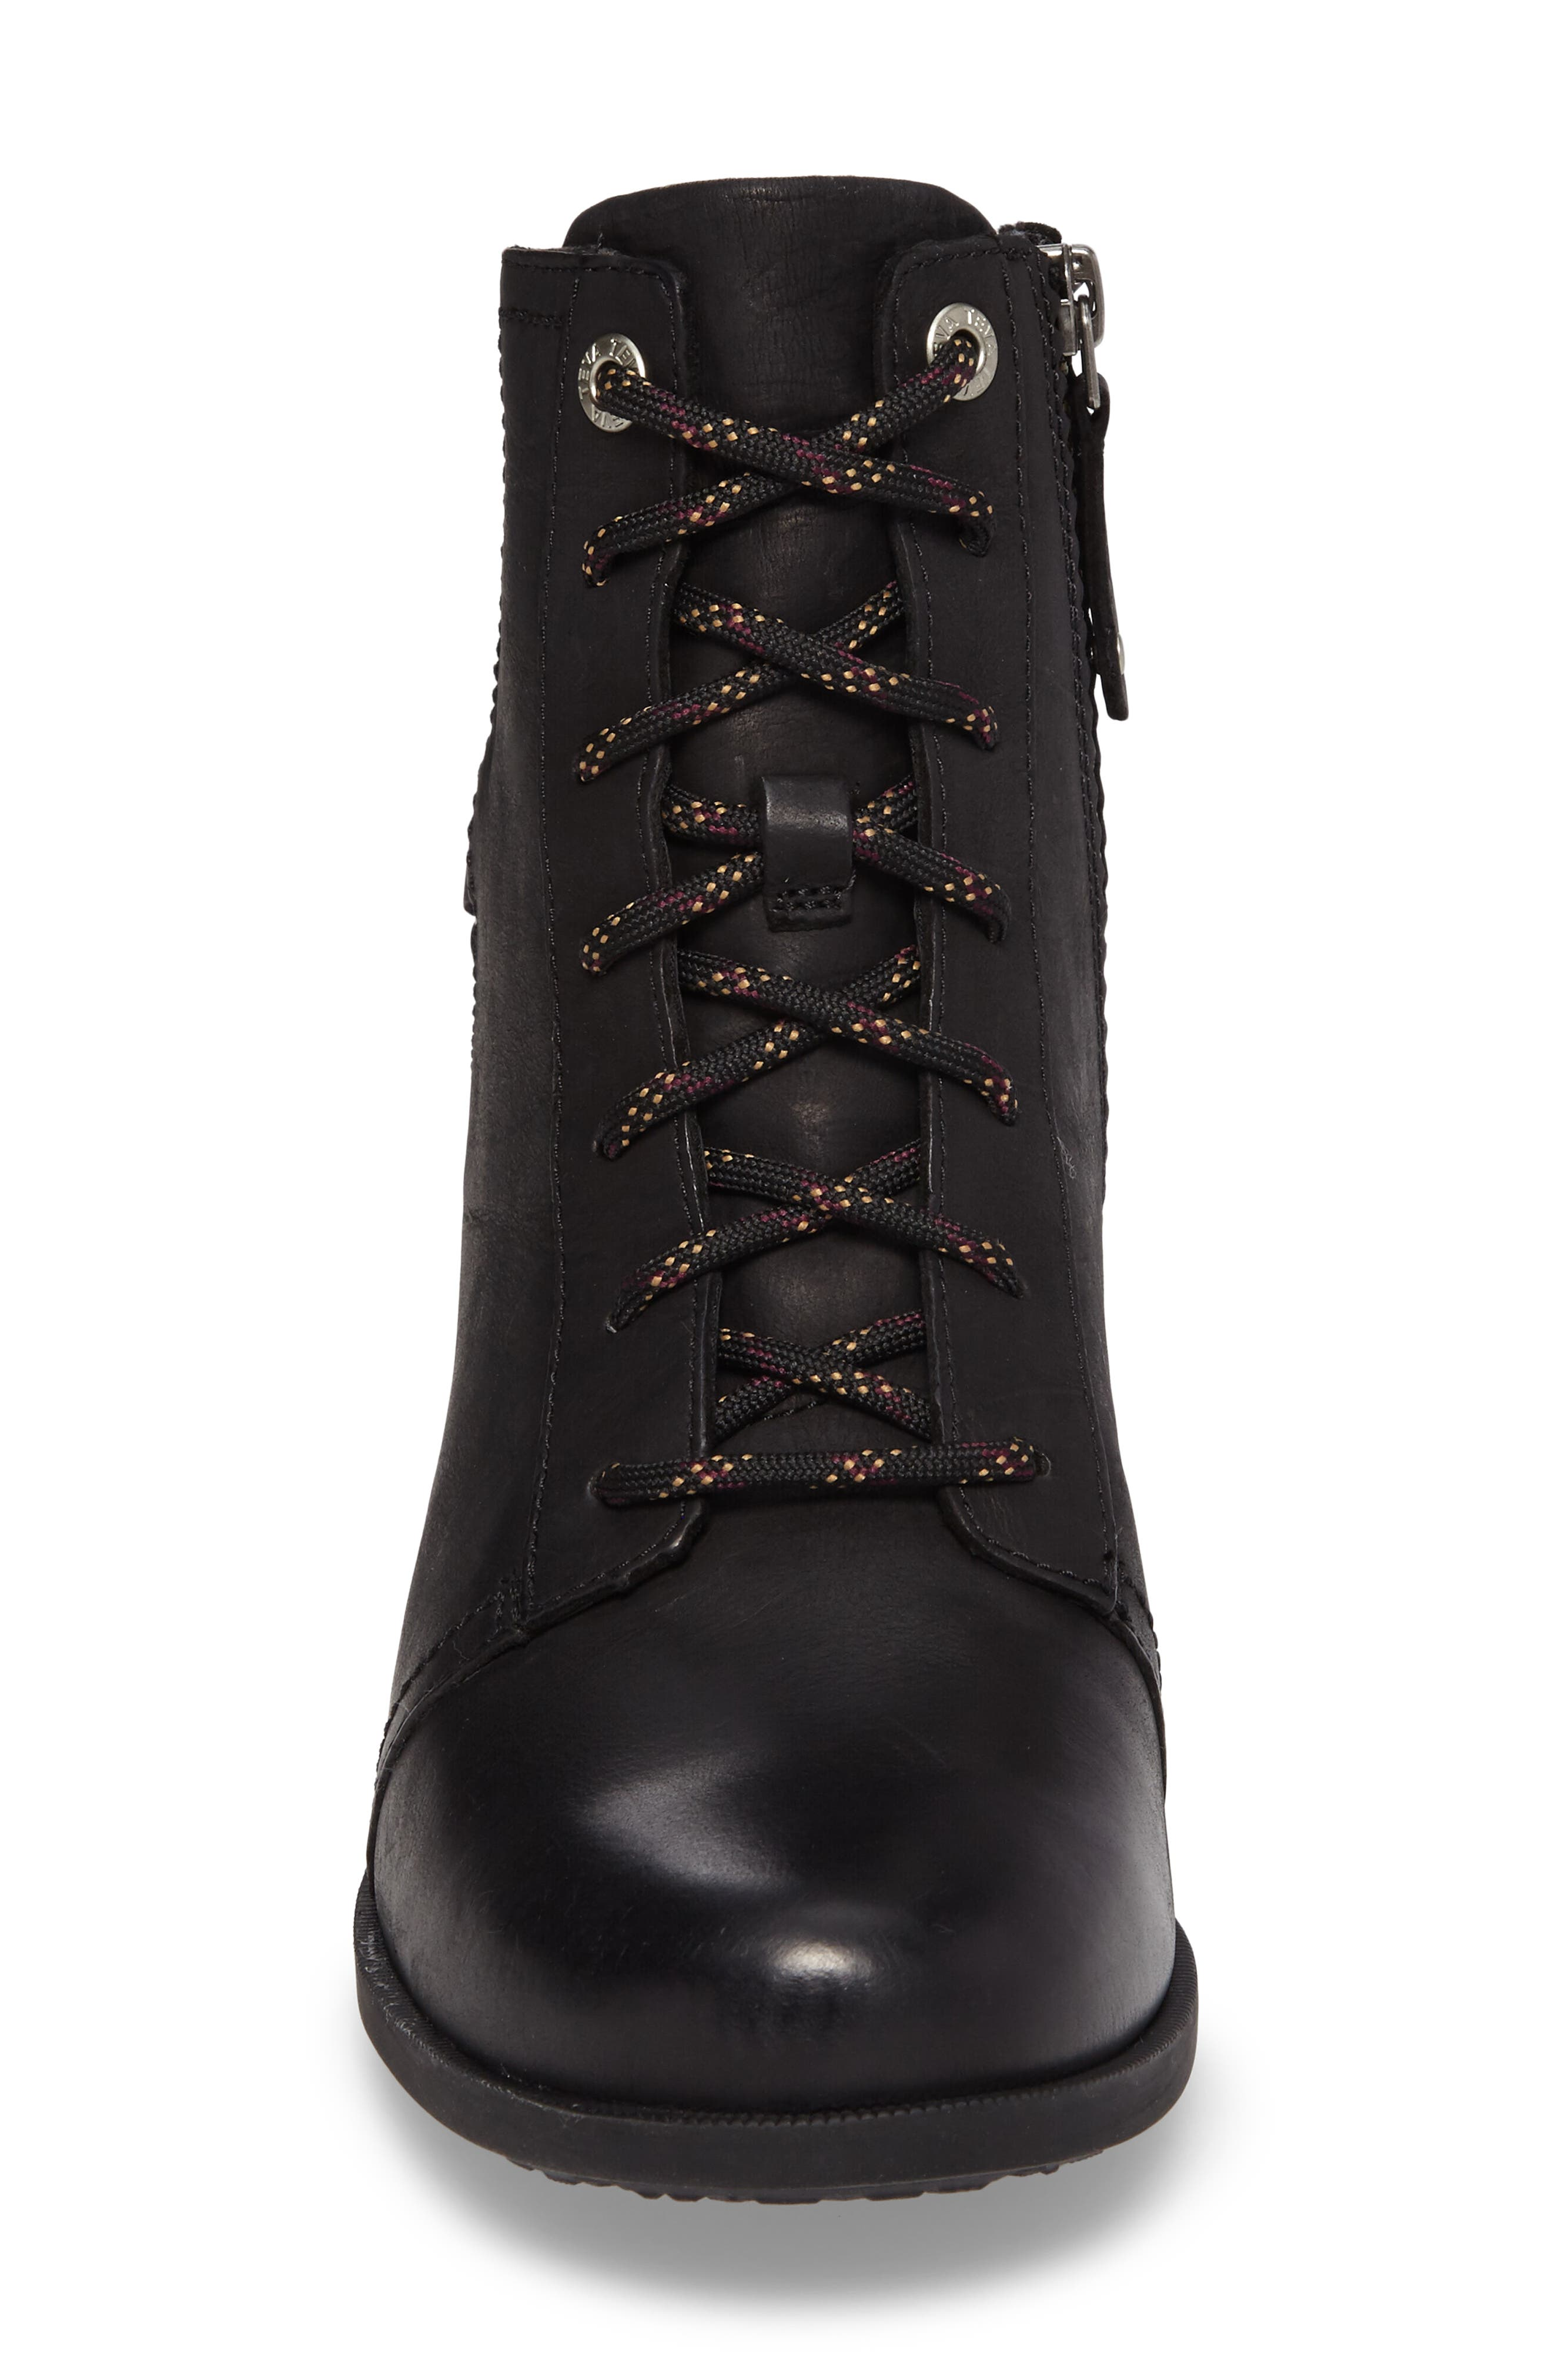 TEVA, Foxy Lace-Up Waterproof Boot, Alternate thumbnail 4, color, BLACK LEATHER